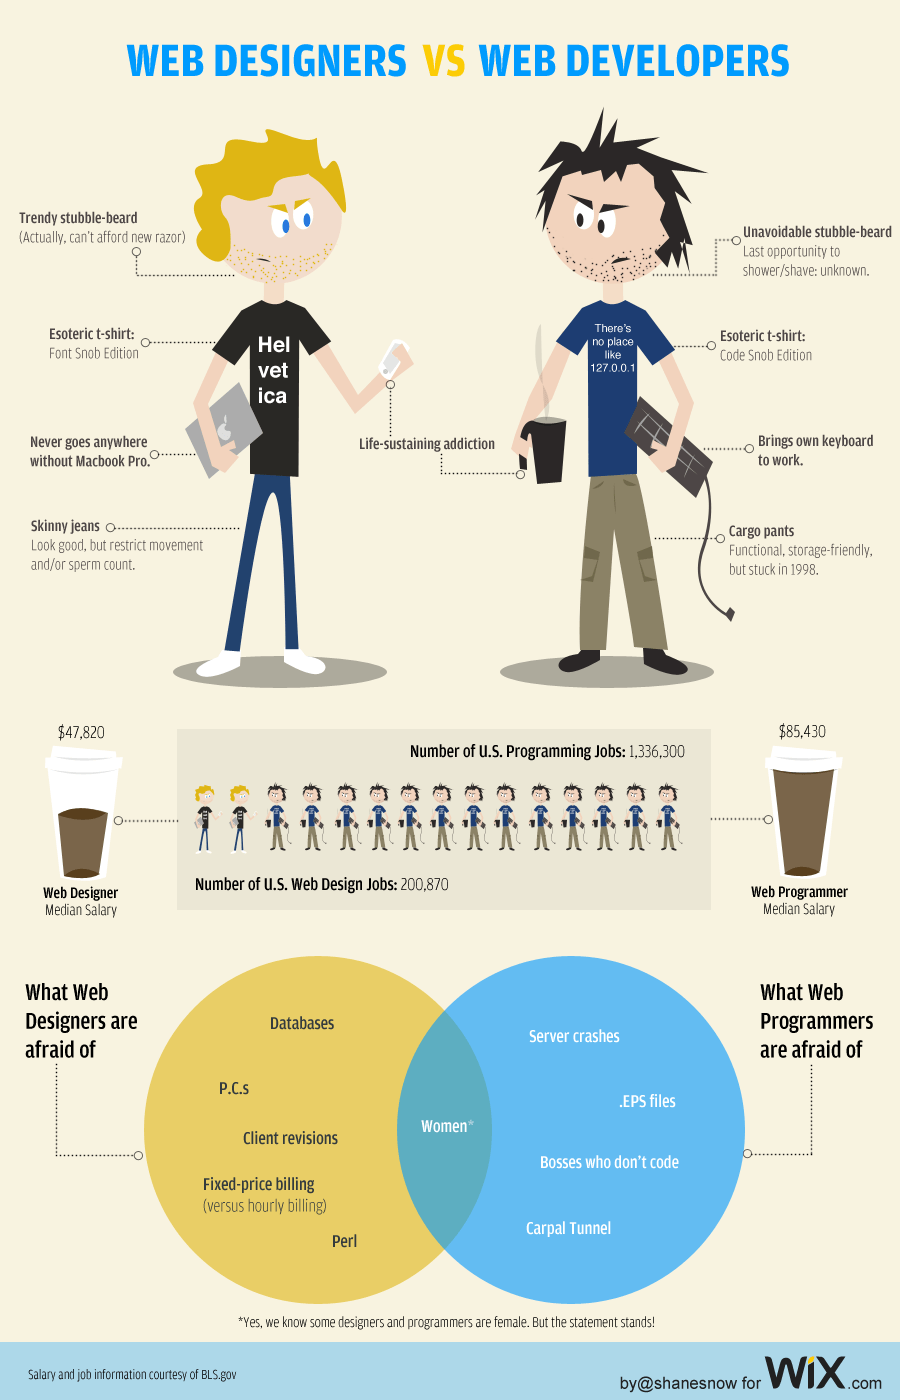 Web Developers vs Web Designers